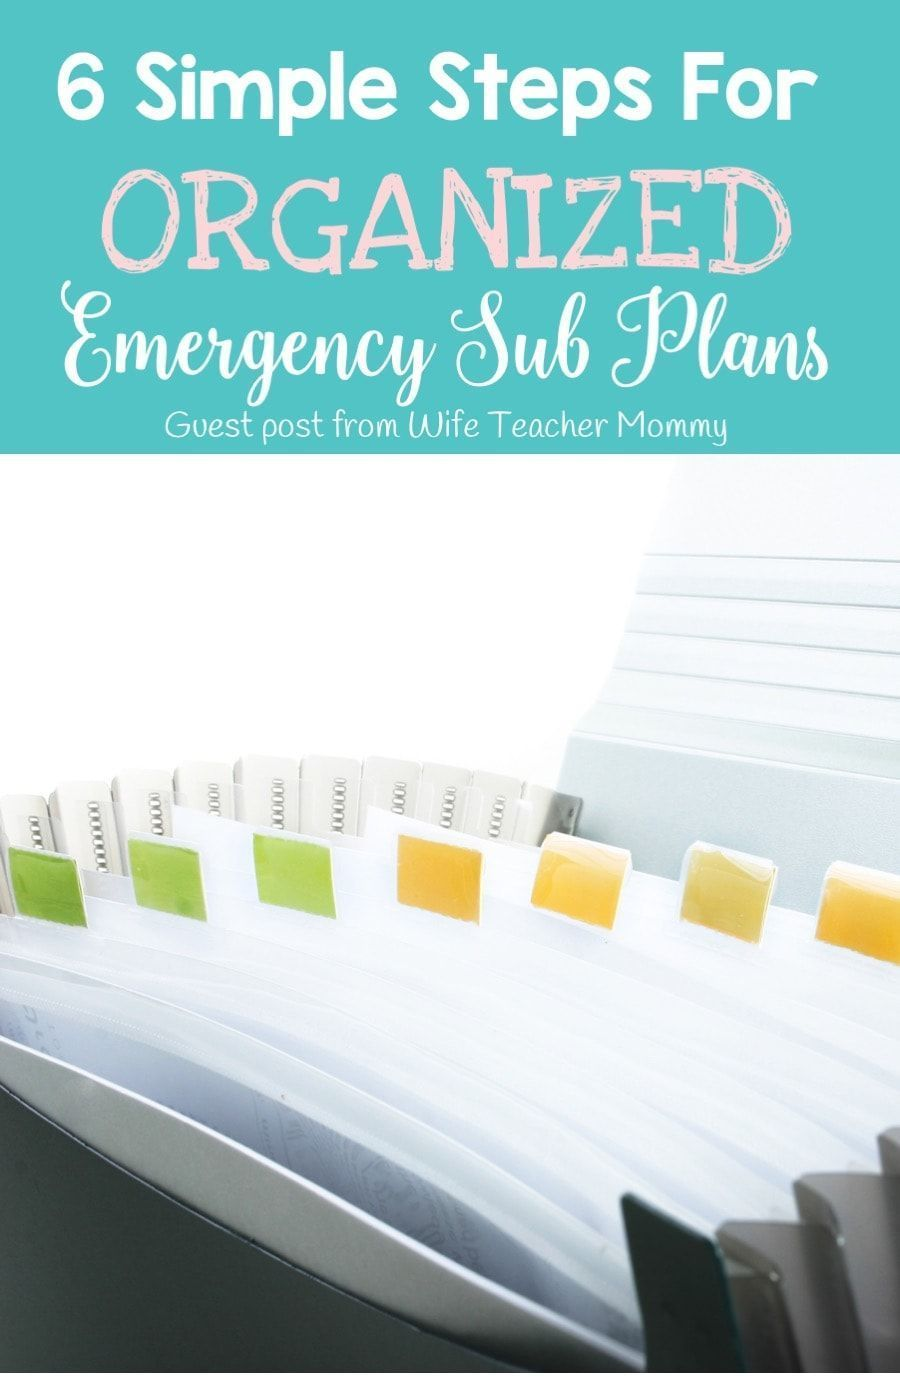 Six Simple Steps for Organized Emergency Sub Plans #emergencysubplans How well organized are your emergency sub plans?  Learn six simple steps to create organized emergency sub plans for your classroom. via @whatilearned #emergencysubplans Six Simple Steps for Organized Emergency Sub Plans #emergencysubplans How well organized are your emergency sub plans?  Learn six simple steps to create organized emergency sub plans for your classroom. via @whatilearned #emergencysubplans Six Simple Steps for #emergencysubplans